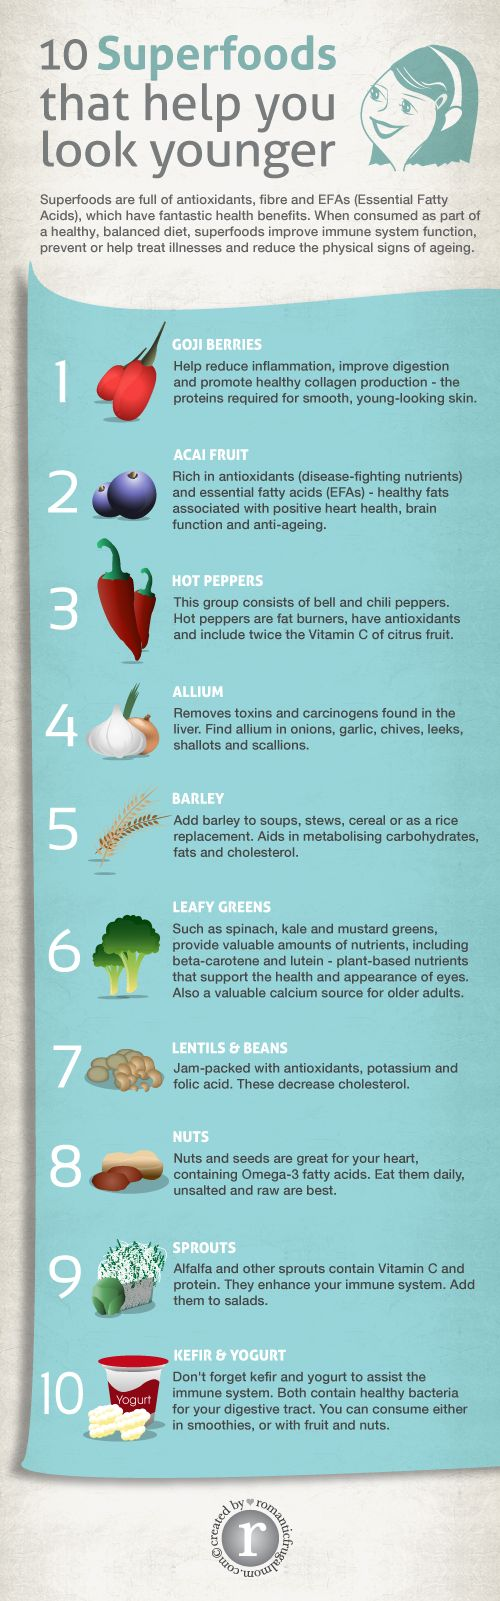 10 Superfoods That Help You Look Younger #infographic